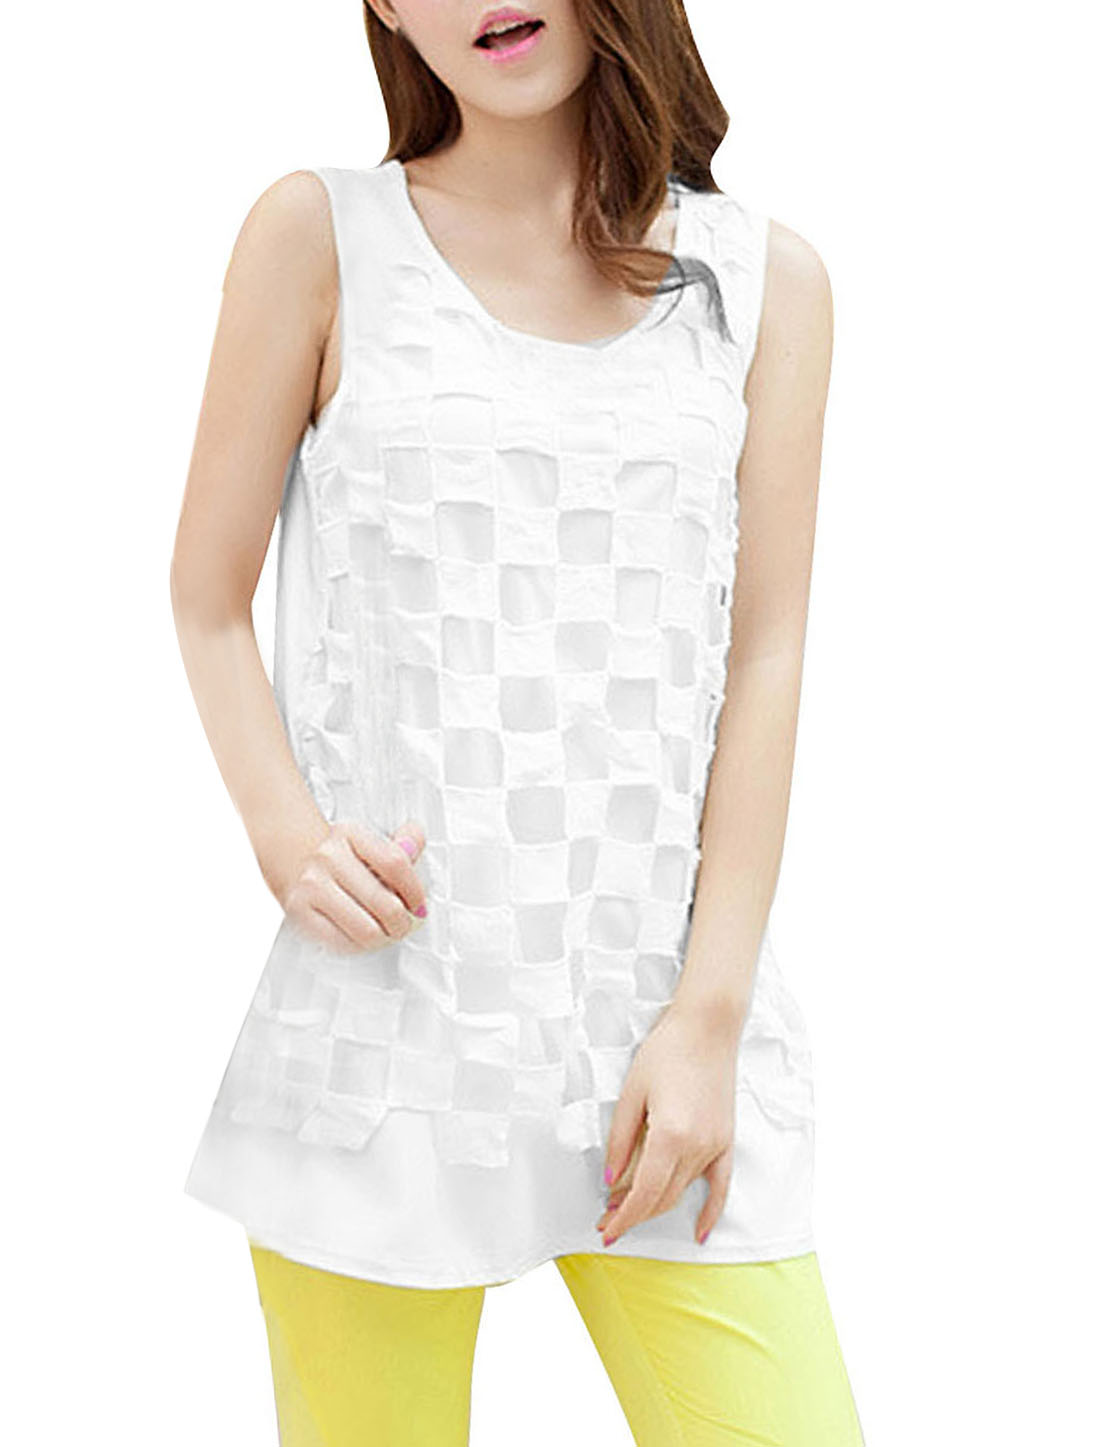 Ladies Round Neck Sleeveless Plaids Top Shirt White XS